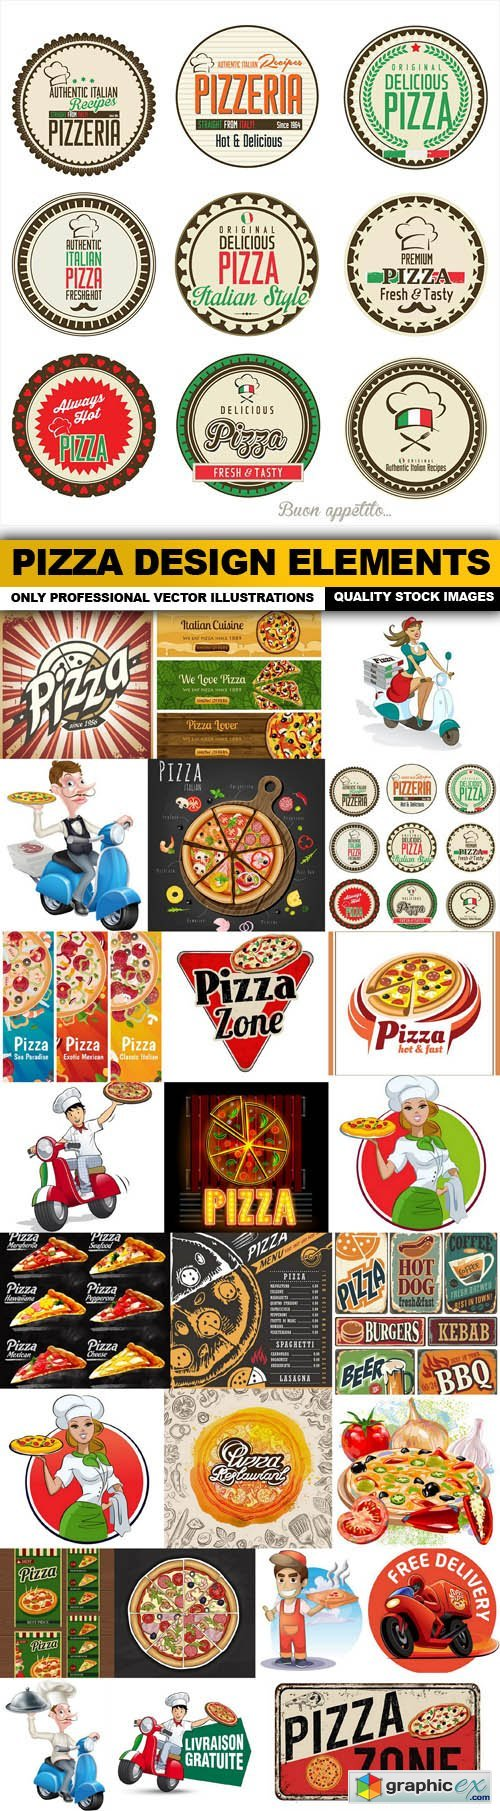 Pizza Design Elements - 25 Vector